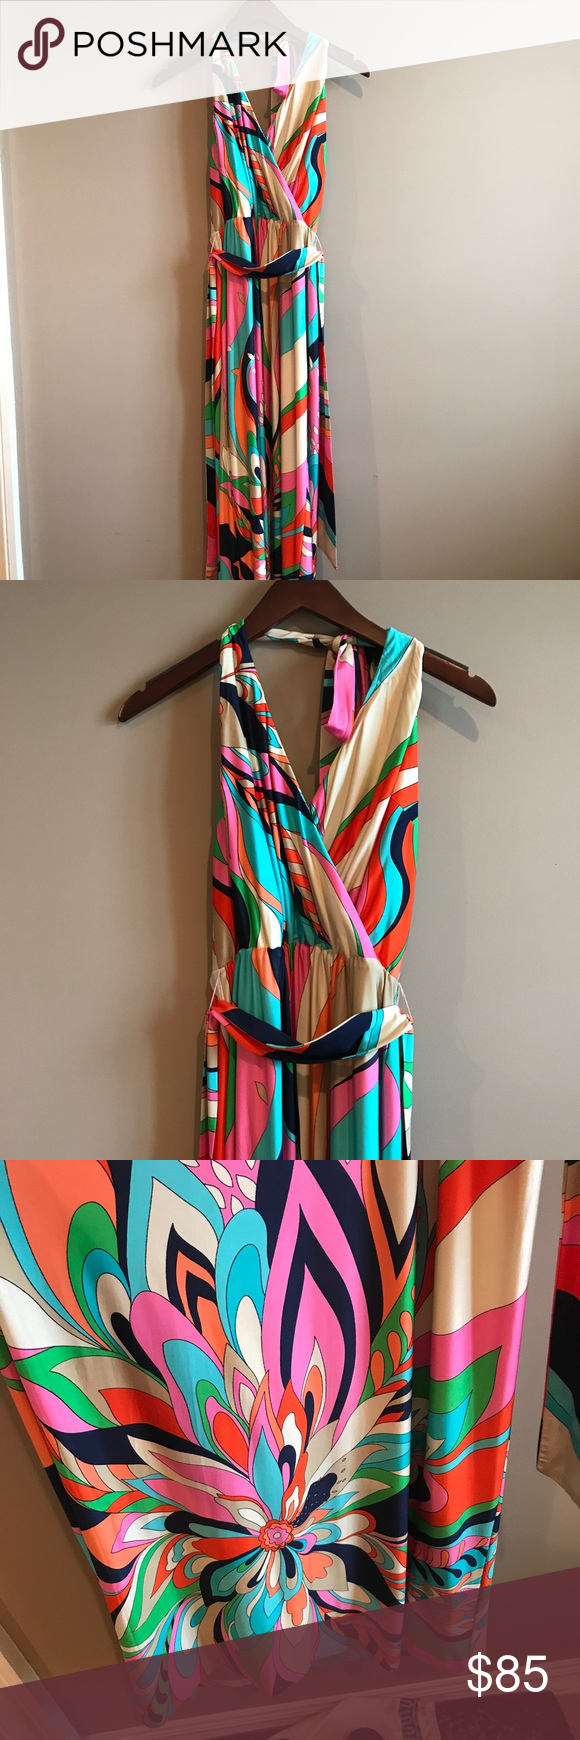 Mod brightly colored floor length halter dress Very mod styled floor length halter dress. Bright and youthful colors. In perfect condition! Trina Turk Dresses Maxi